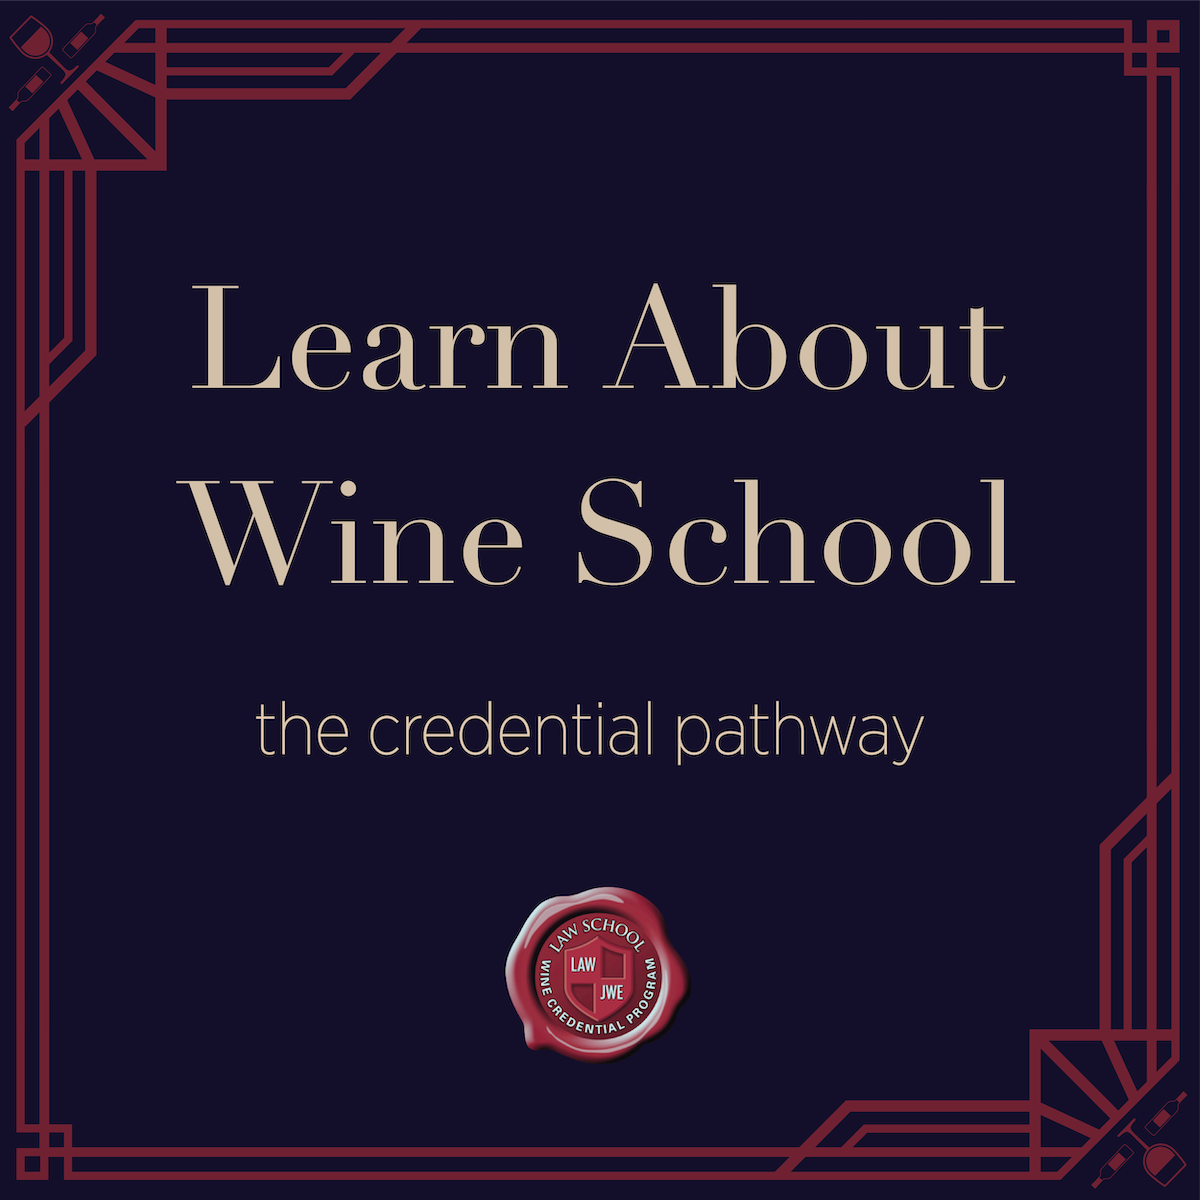 wine-camp-online-wine-education-learn-about-wine